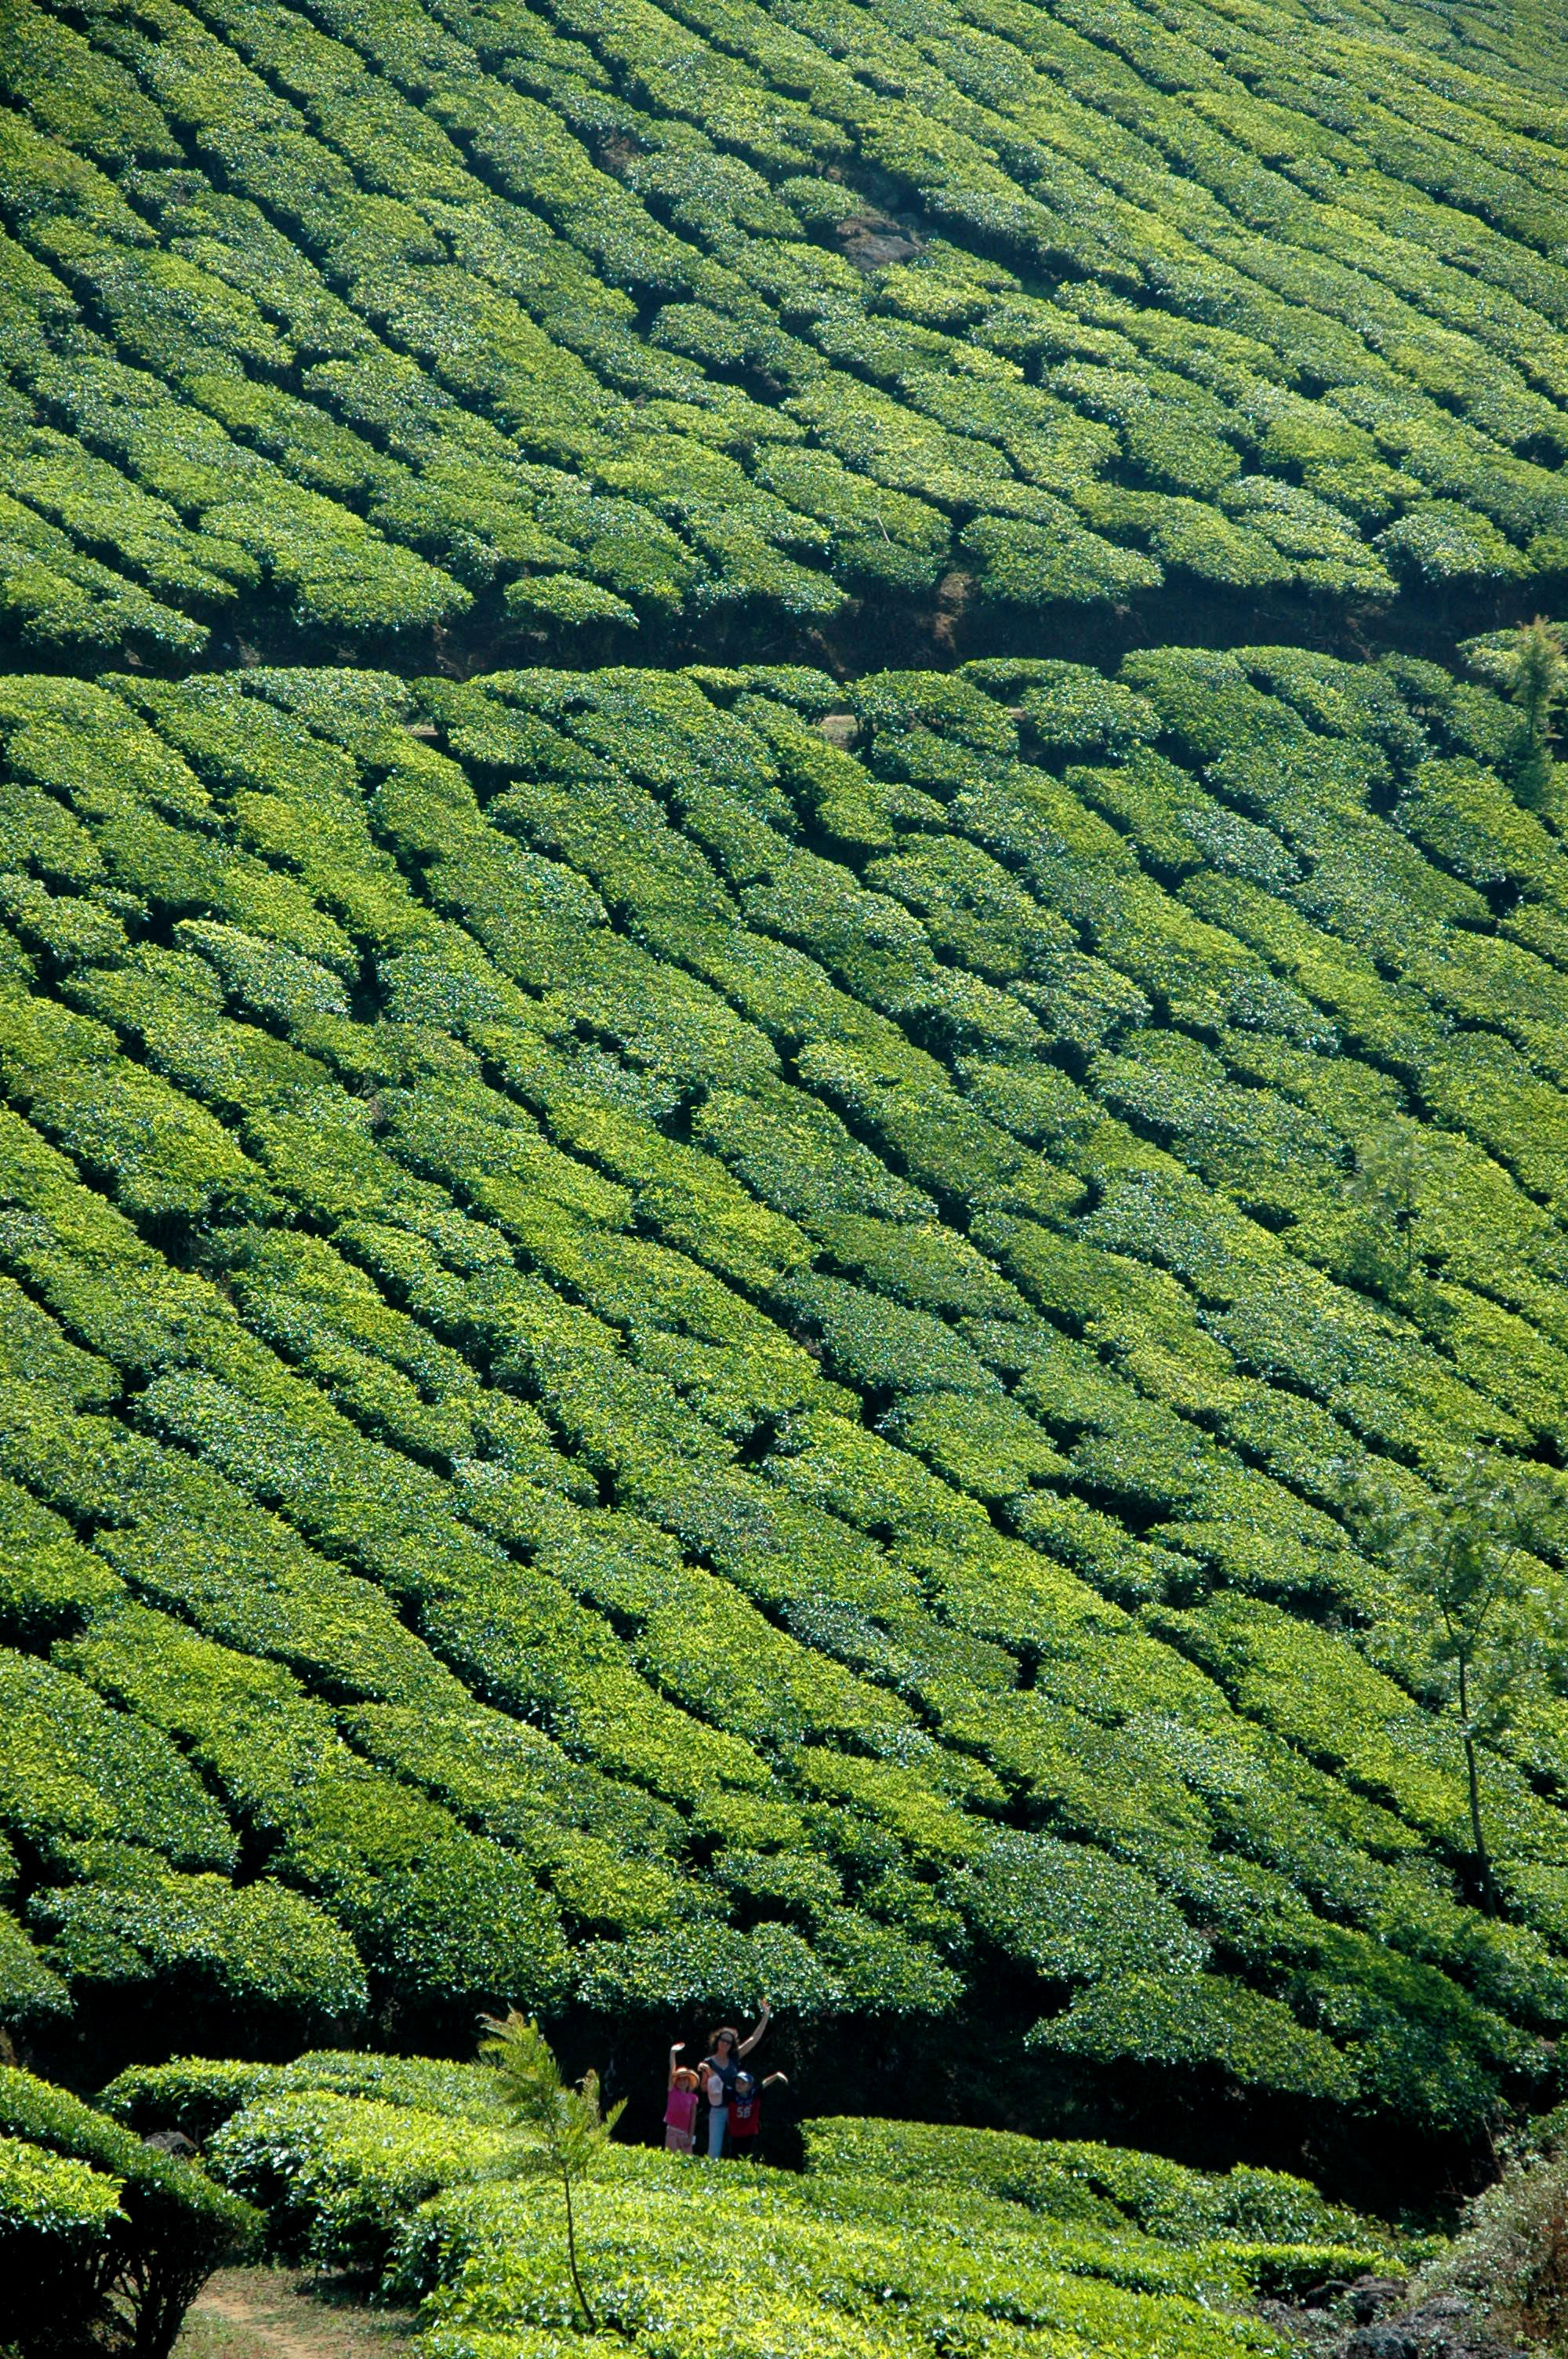 Munnar Tea Planatiion © JonoVernon-Powell.com